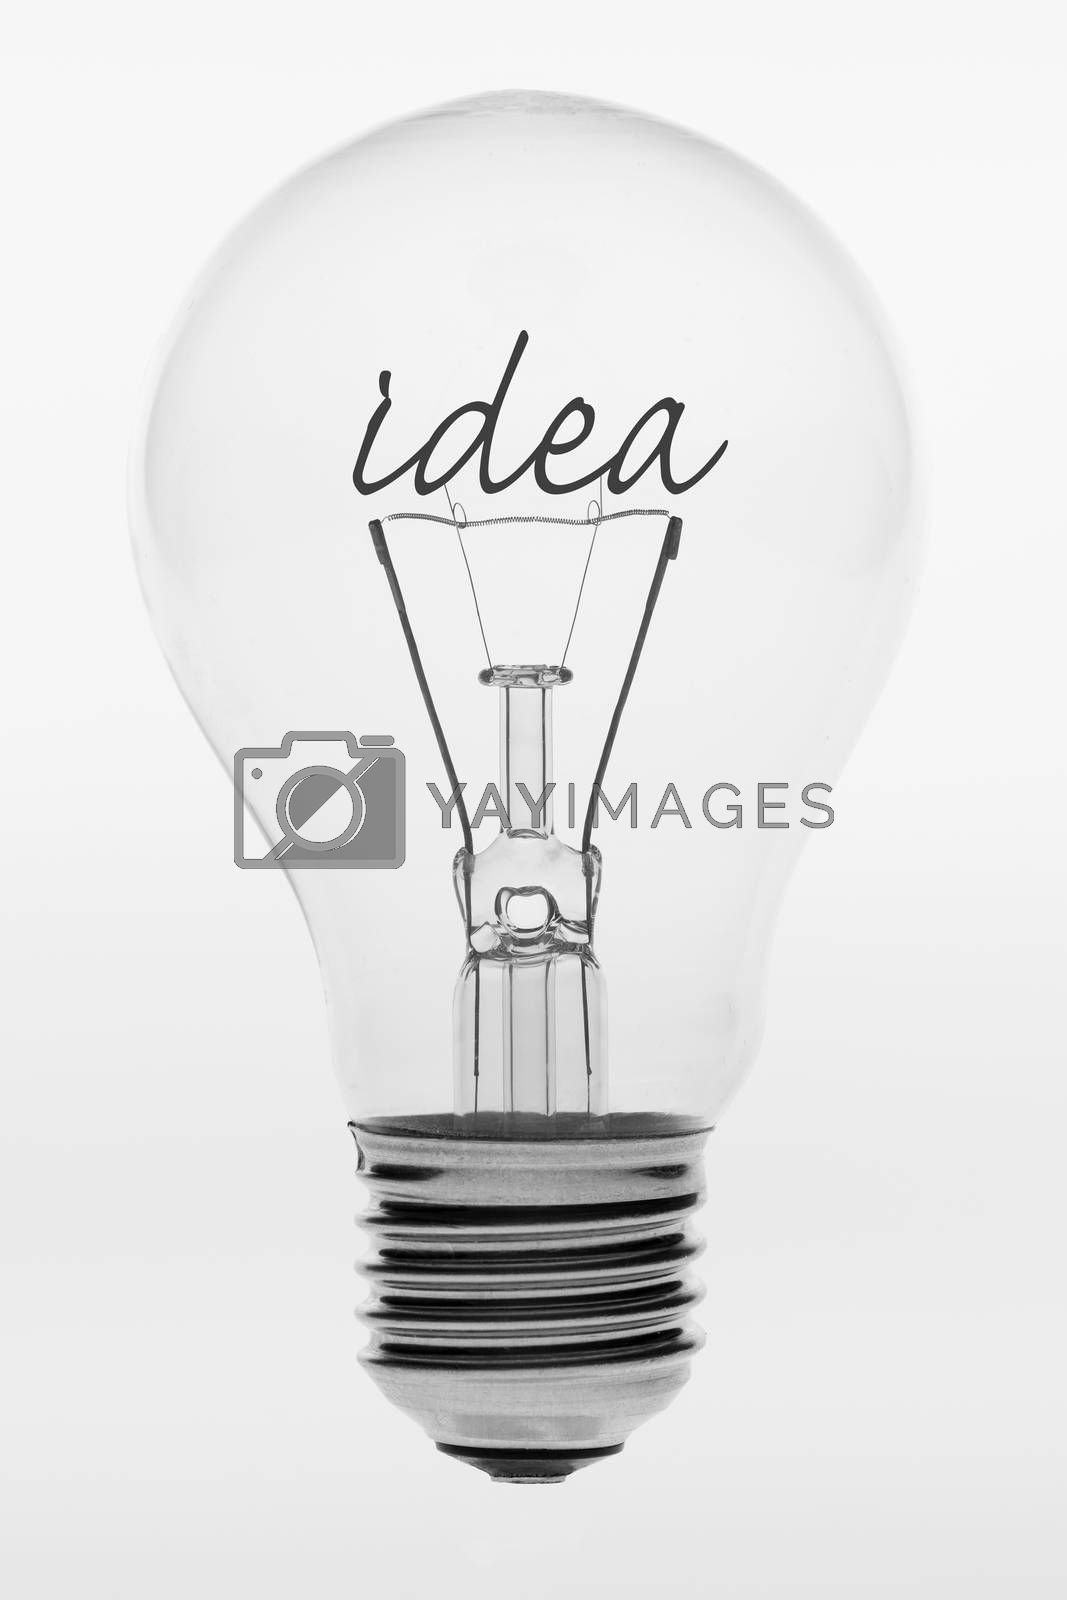 Old fashioned light bulb with the text idea formed by filaments in the crystal ball